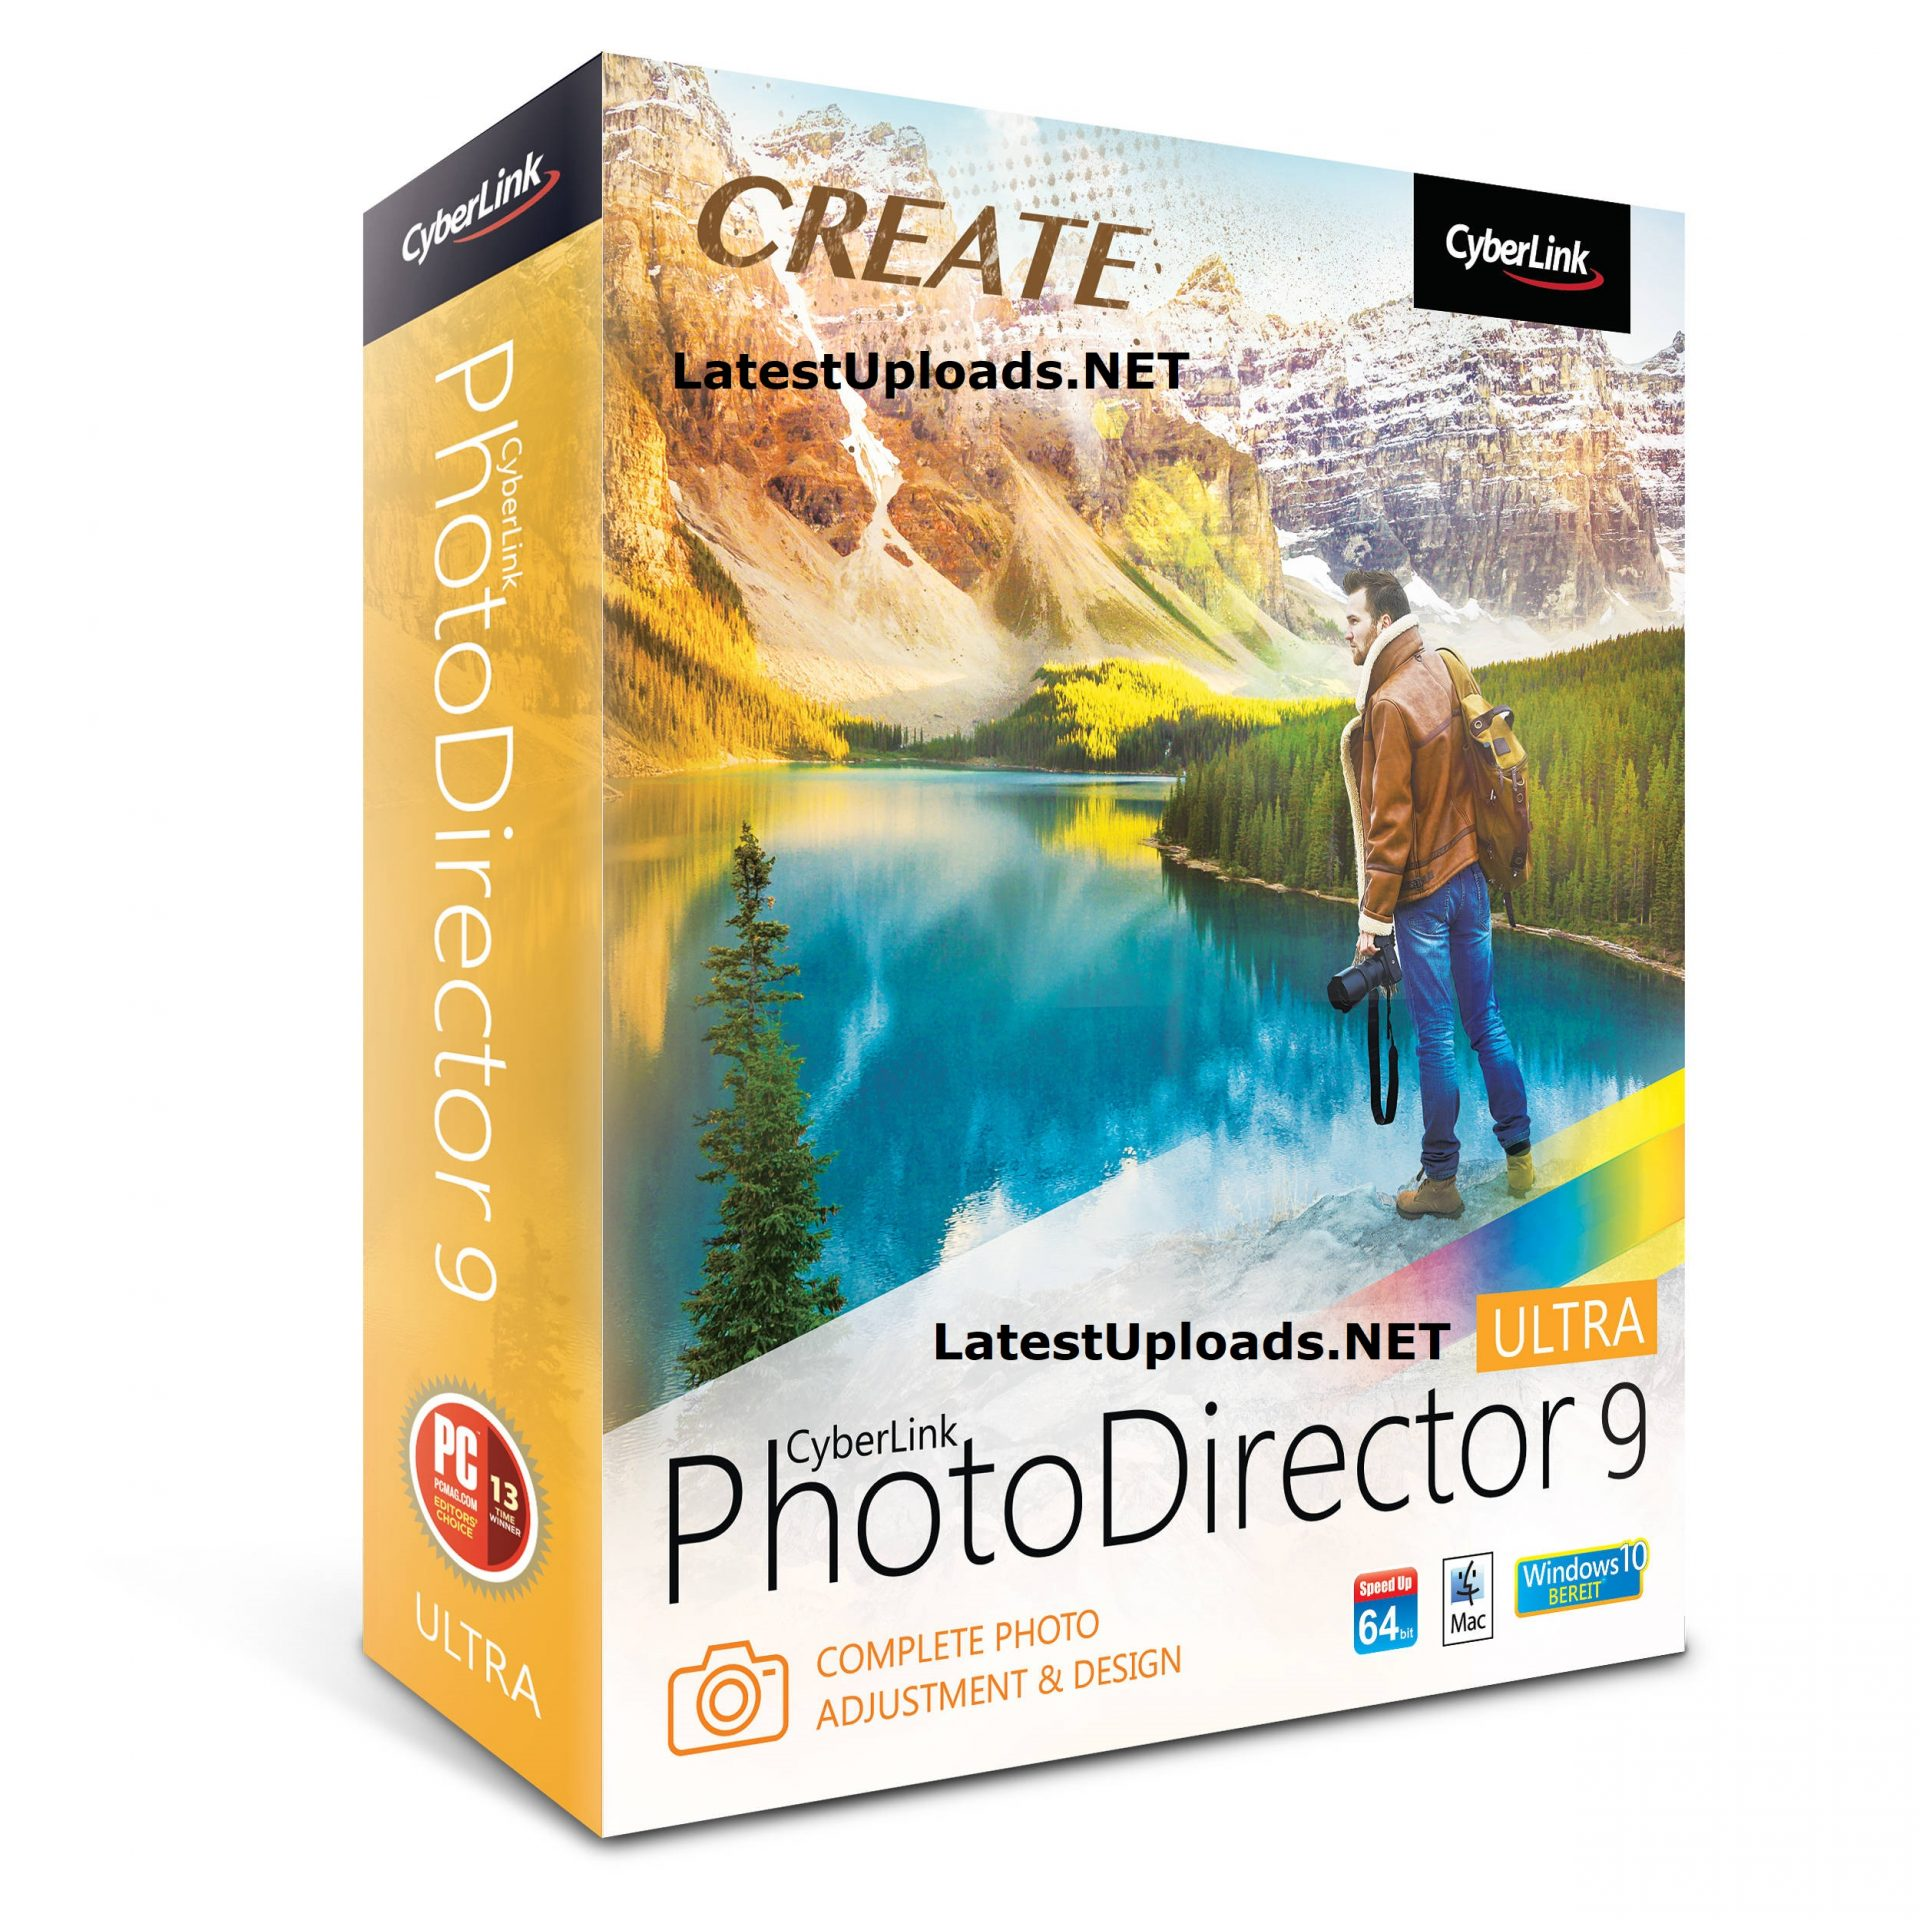 CyberLink PhotoDirector Ultra 9.0.2406.0 Free Download Full Version Crack Keygen